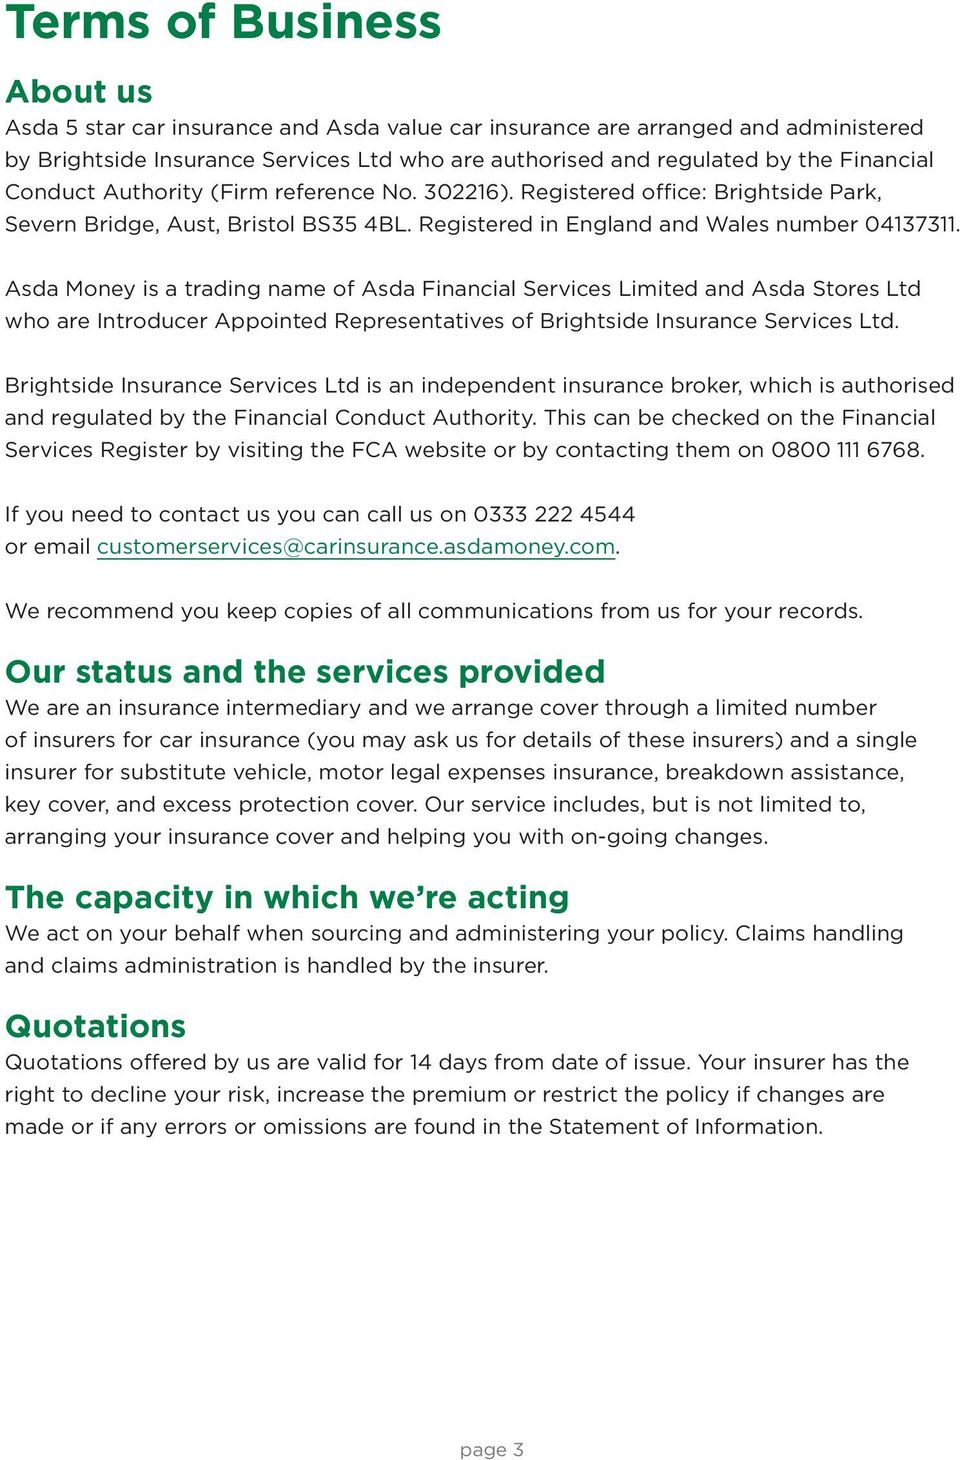 Asda Money is a trading name of Asda Financial Services Limited and Asda Stores Ltd who are Introducer Appointed Representatives of Brightside Insurance Services Ltd.